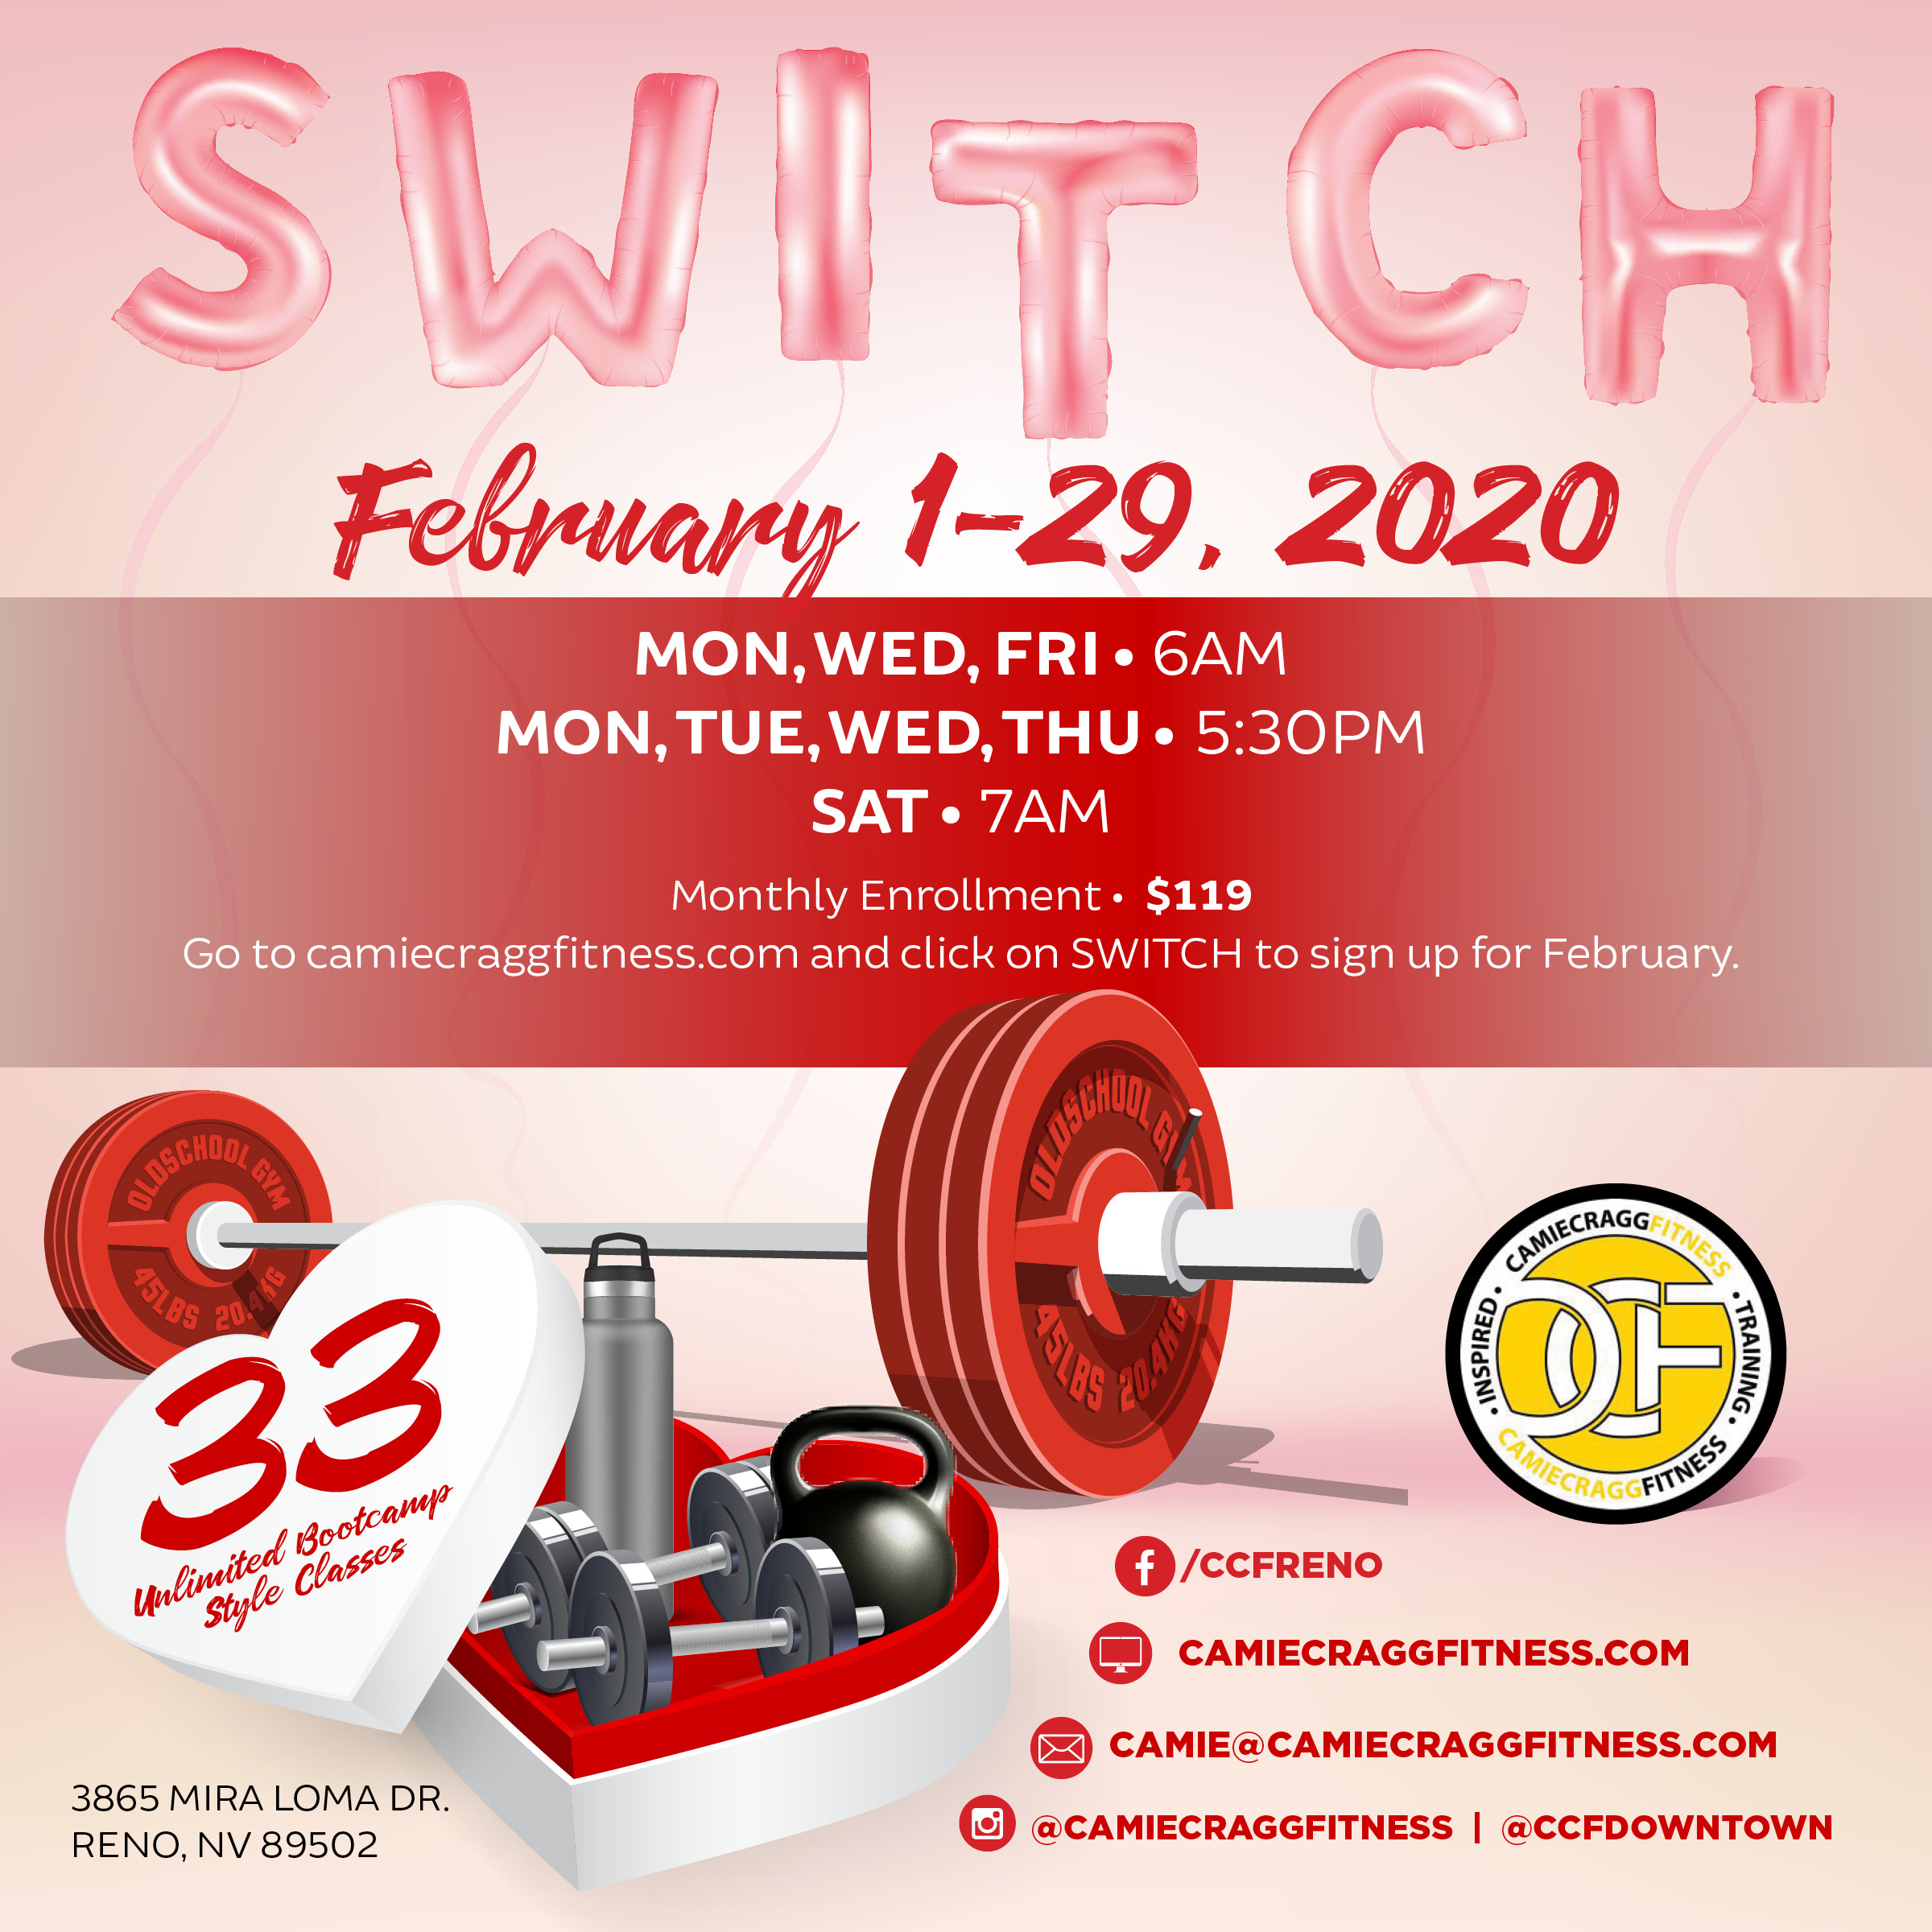 February S.W.I.T.C.H. Feauted